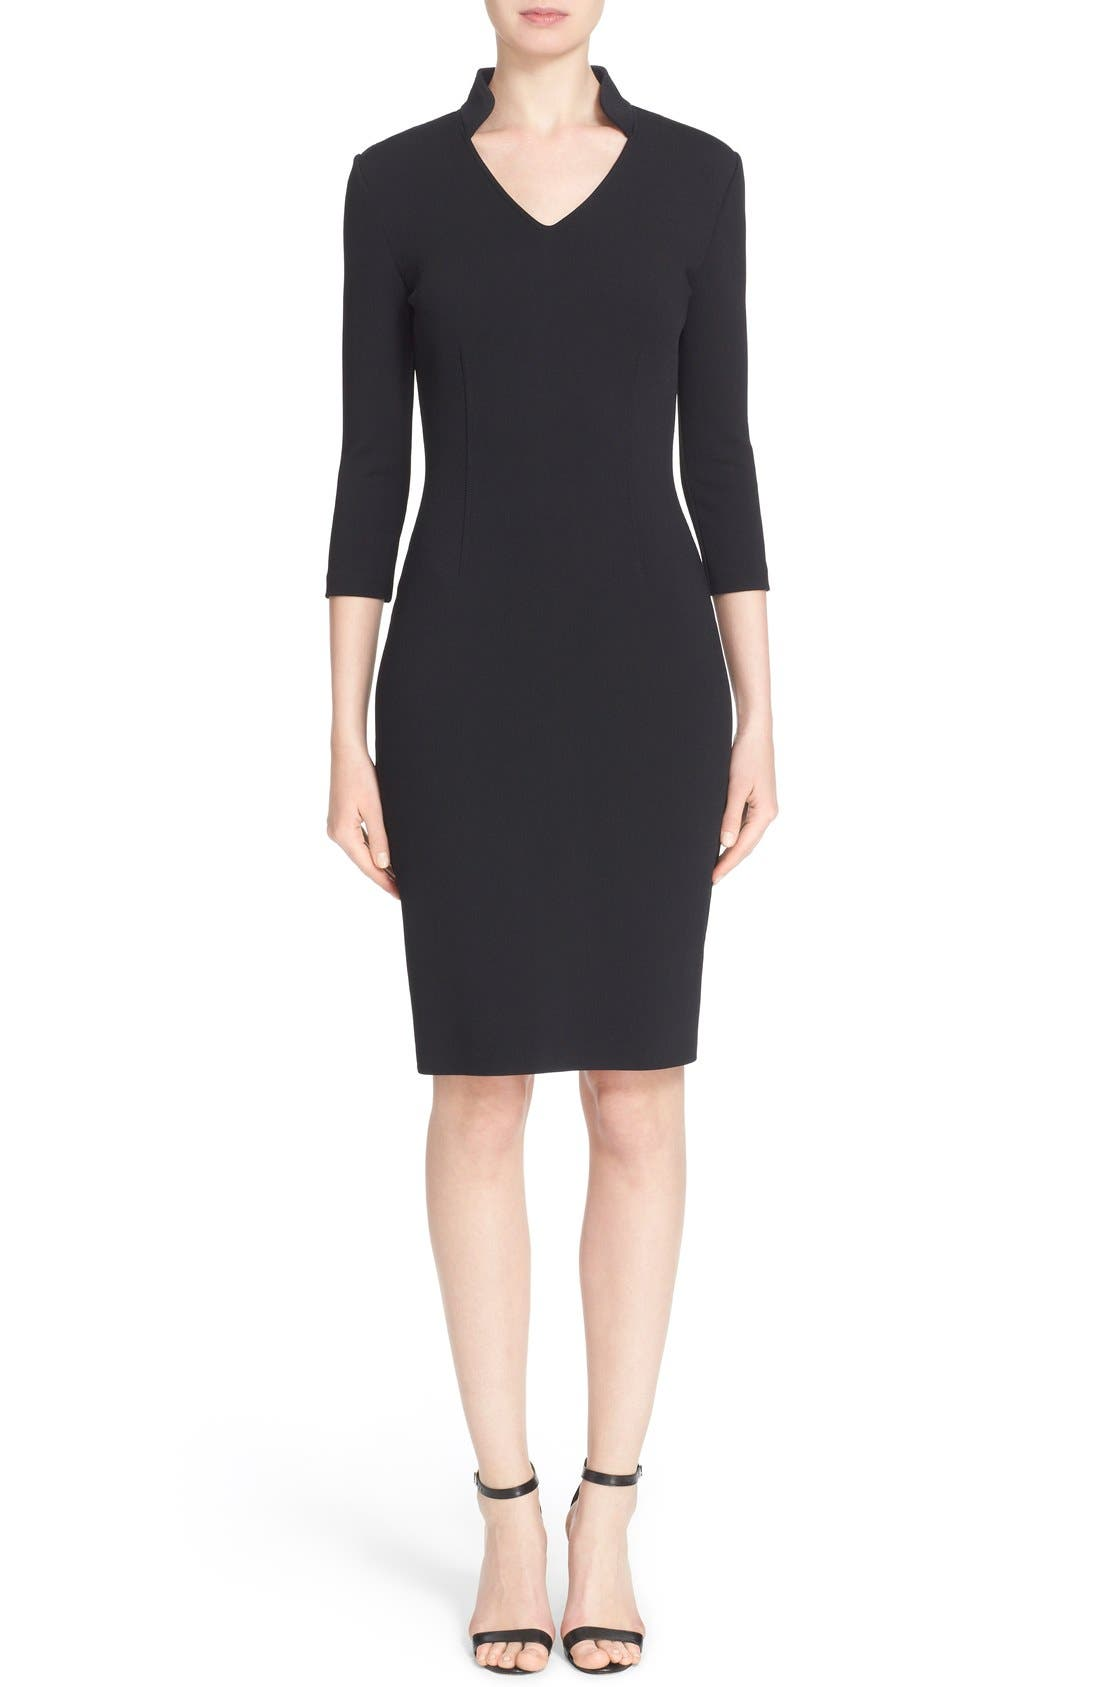 Alternate Image 1 Selected - St. John Collection Luxe Sculpture Knit Sheath Dress